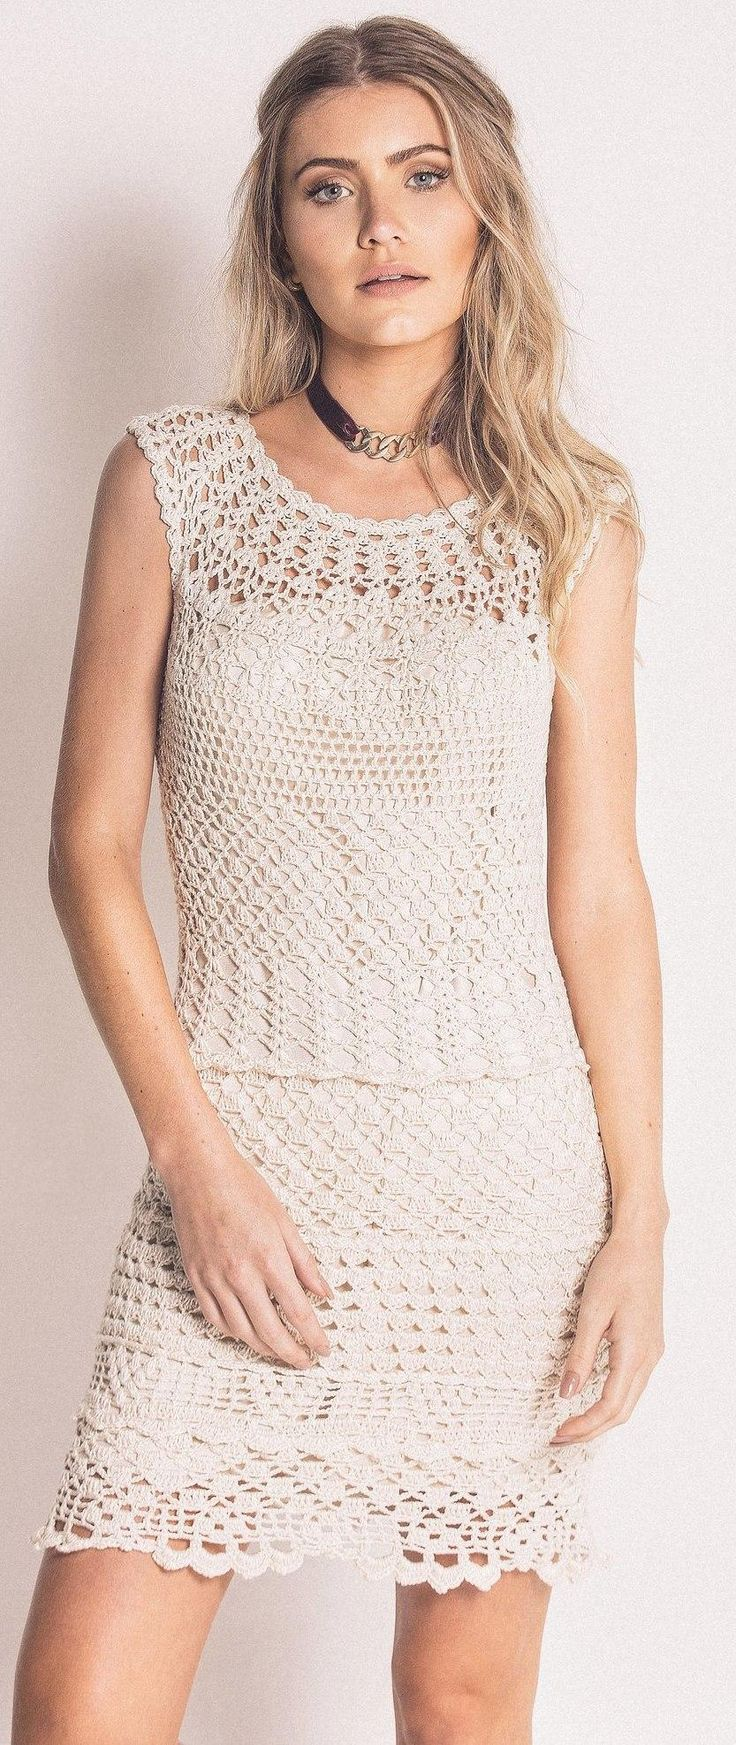 crochet dress by Terezza